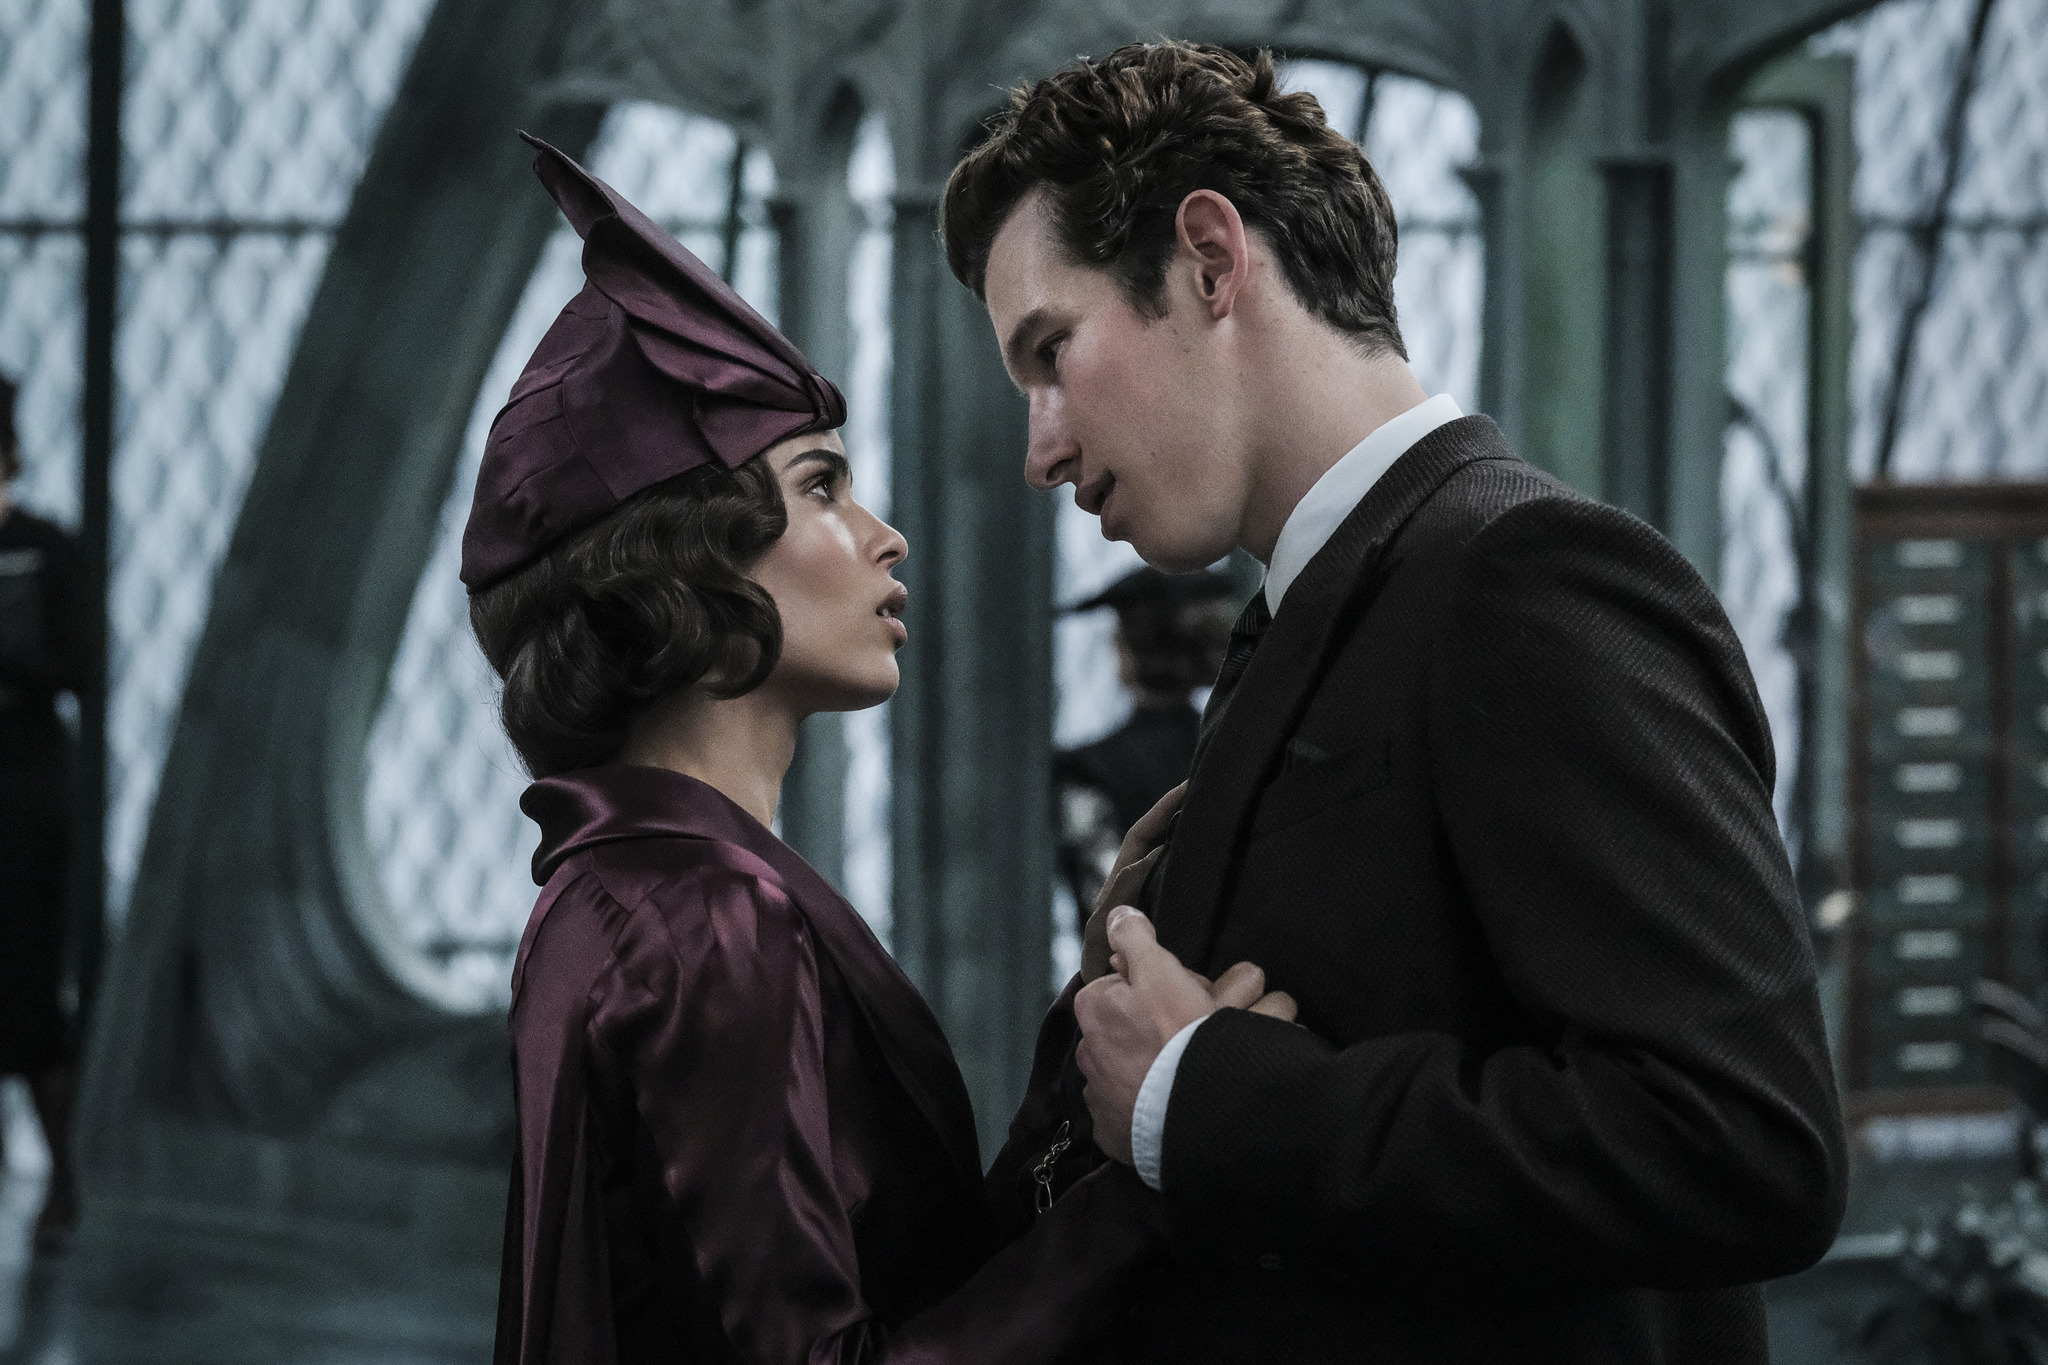 Zoë Kravitz and Callum Turner in Fantastic Beasts: The Crimes of Grindelwald (2018)